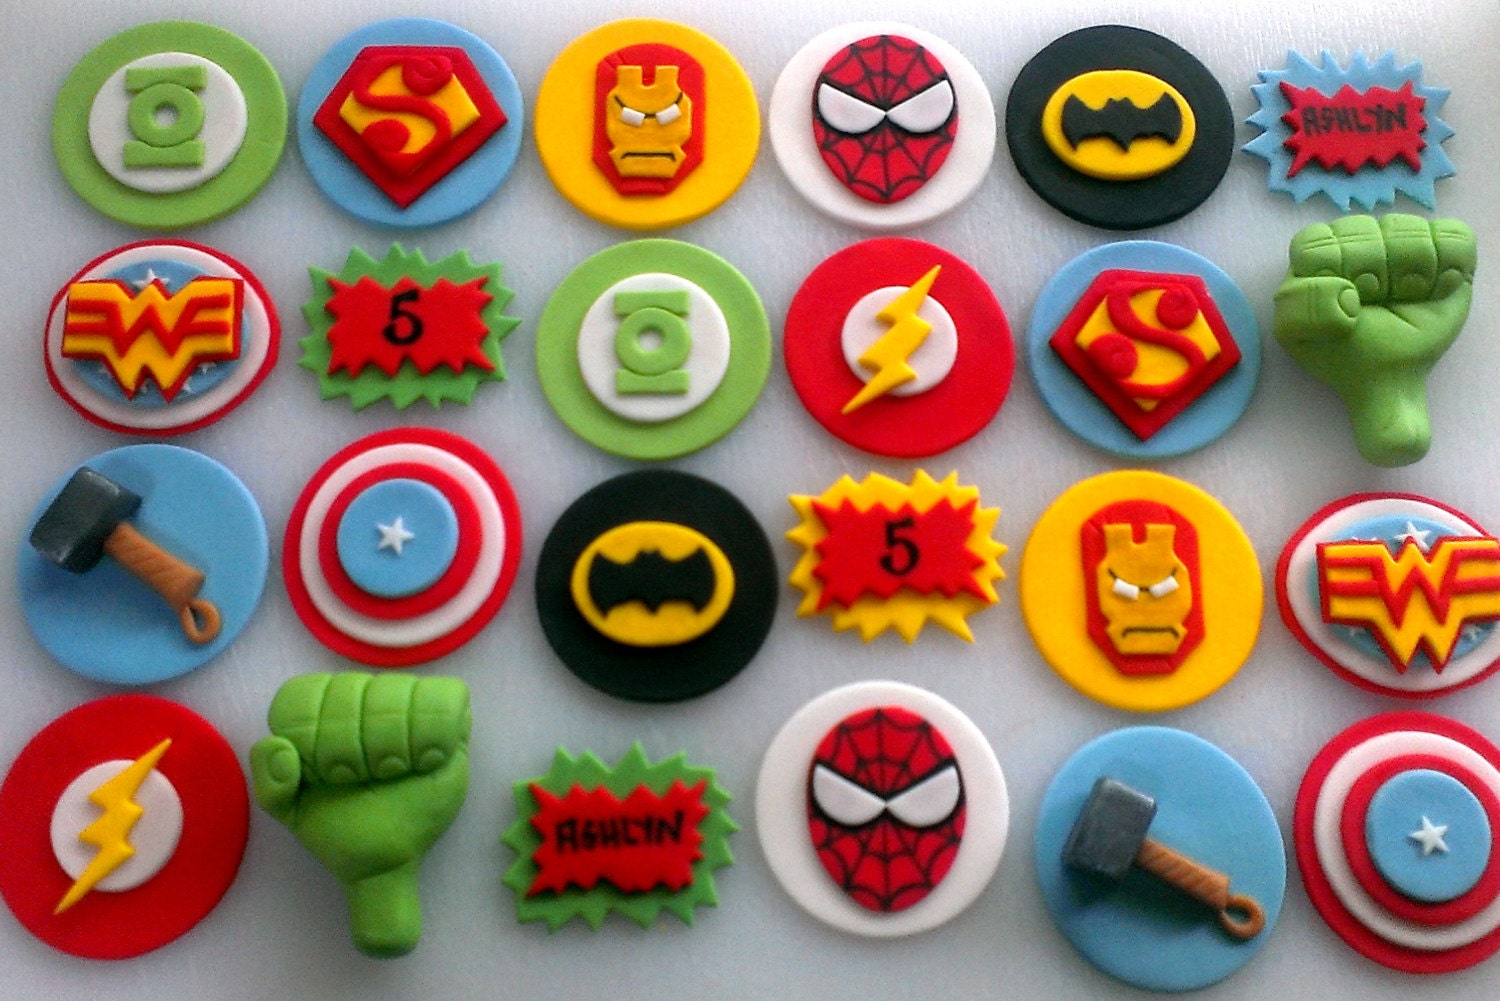 Avengers amp Justice League Superhero Cupcake Toppers By